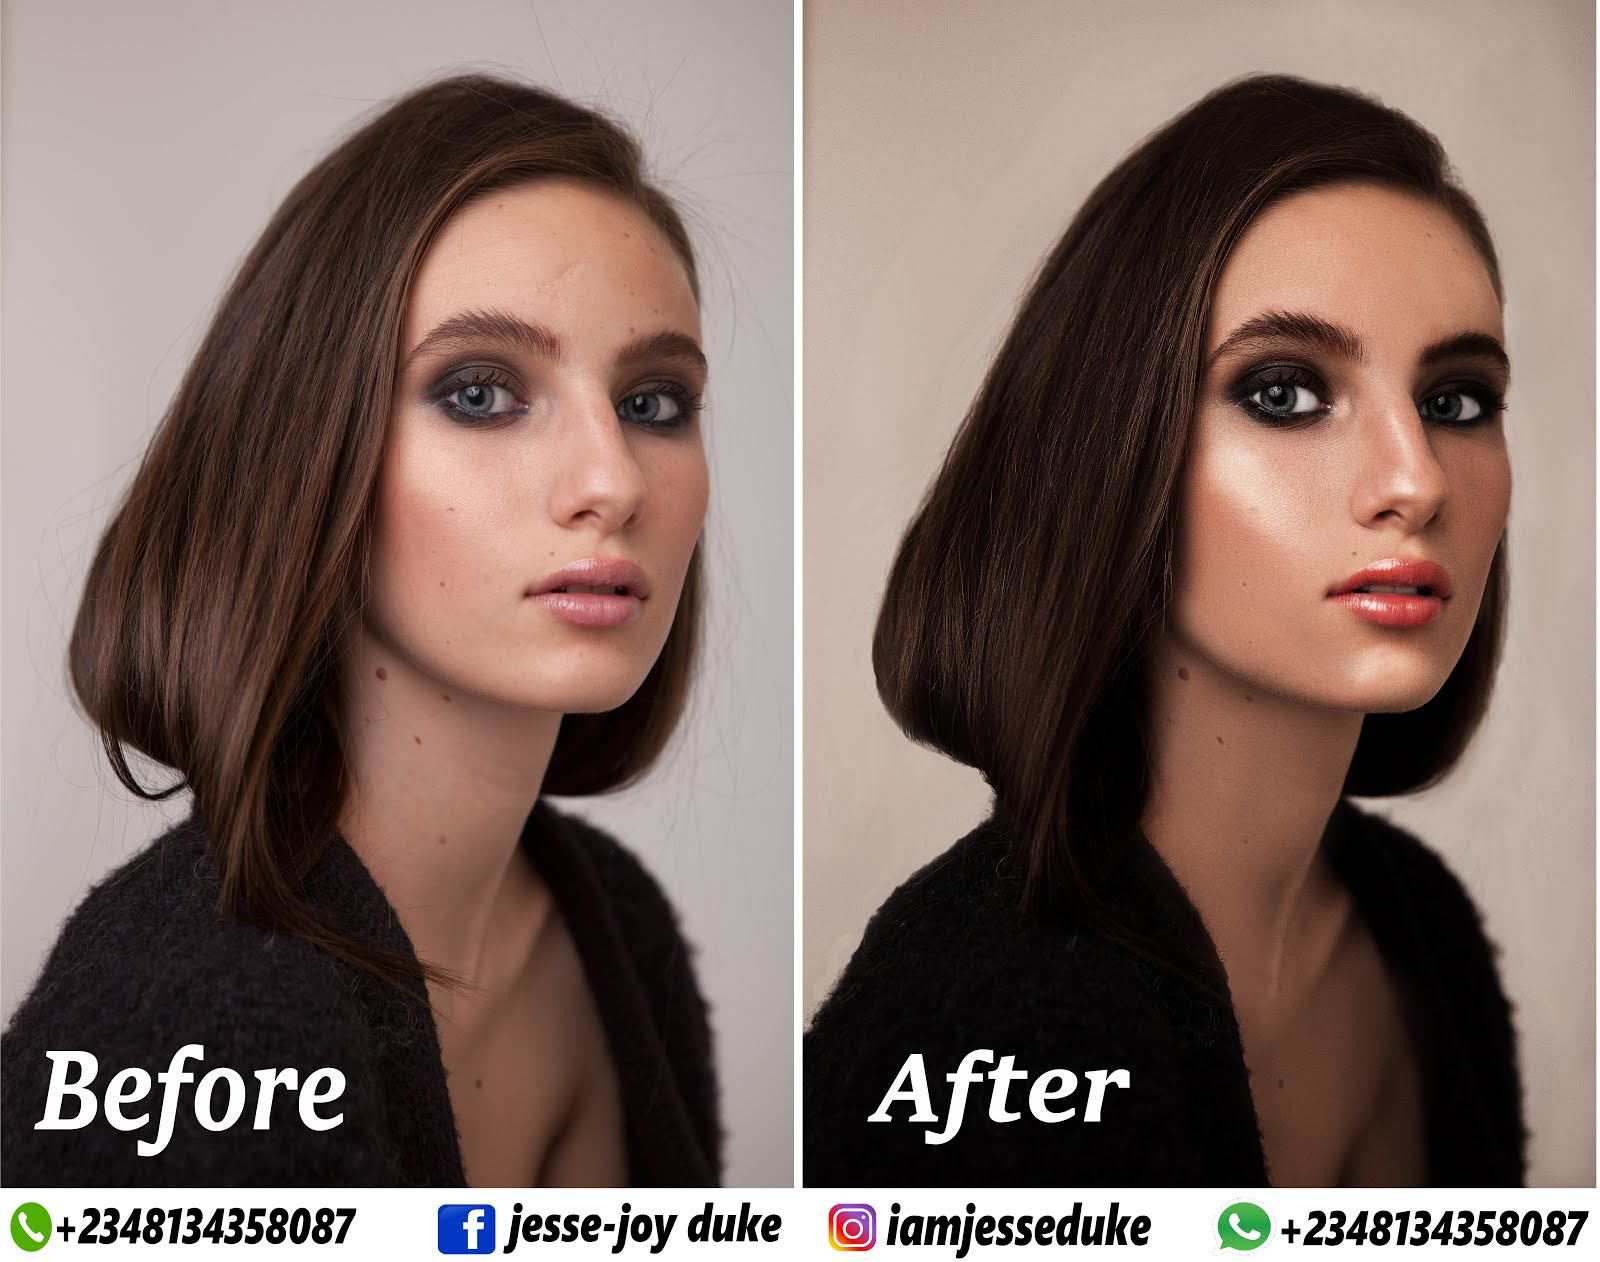 Get A Professional Retouch On Your Pictures